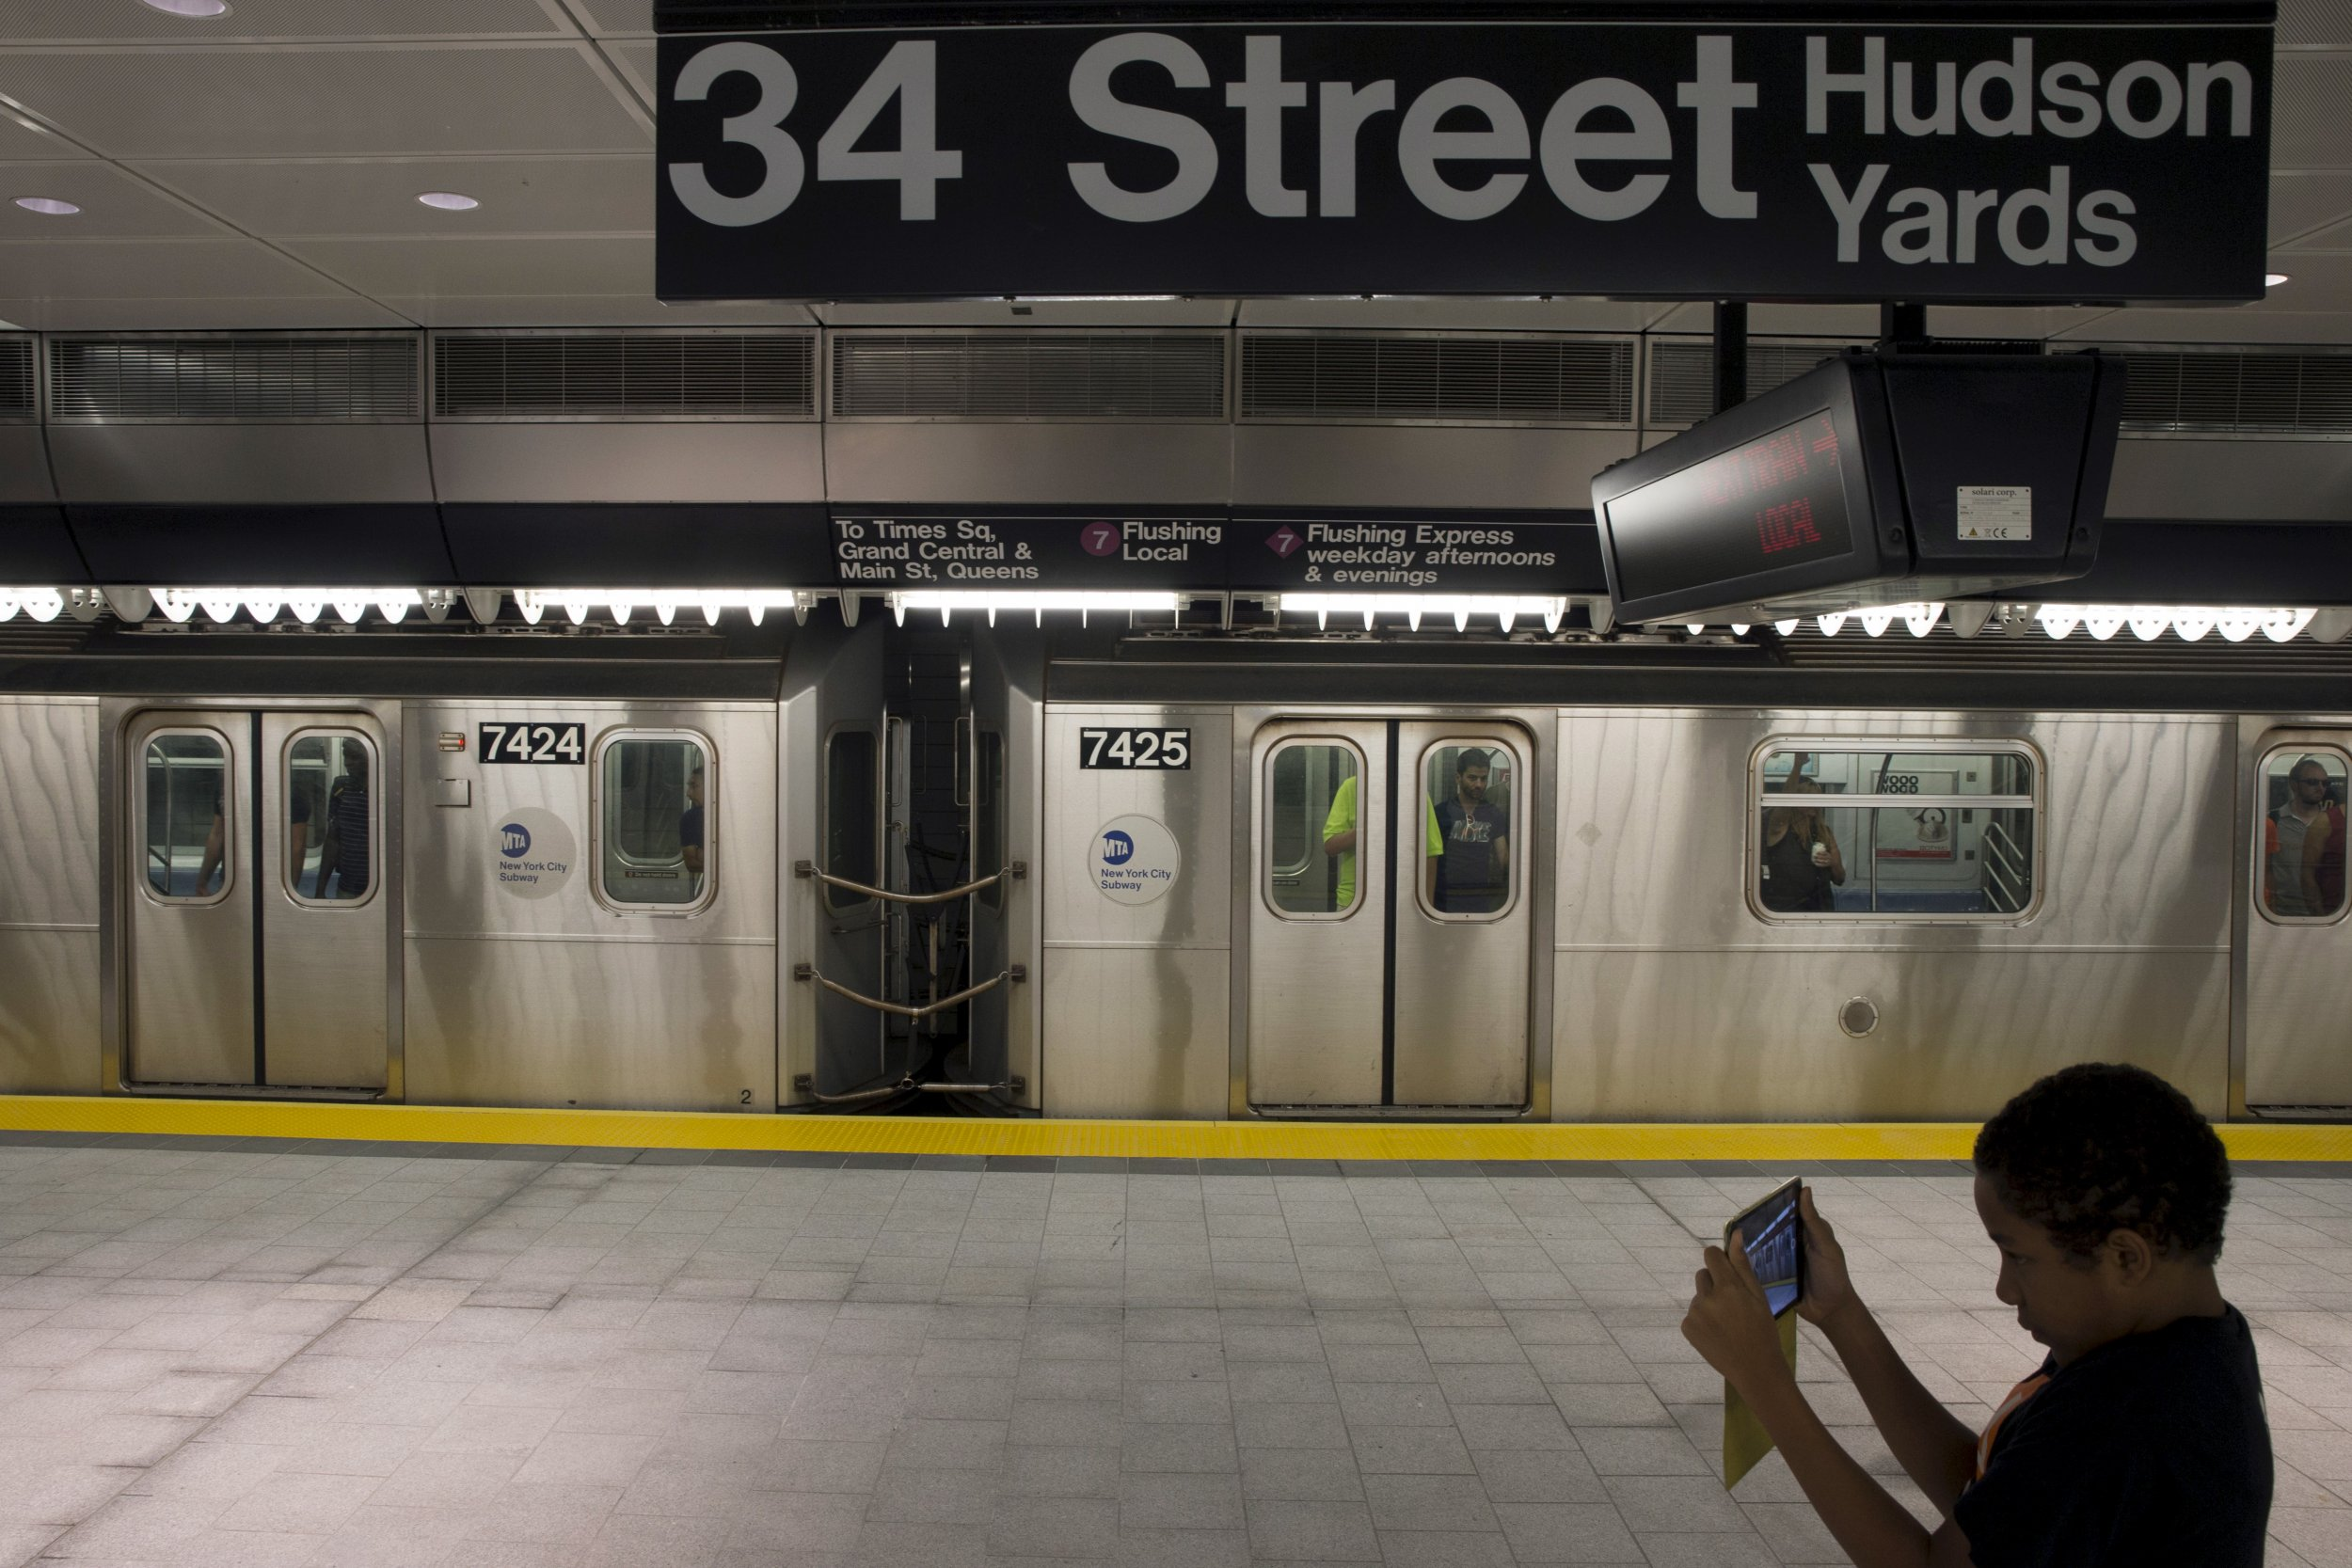 0914_Hudson Yards subway 04